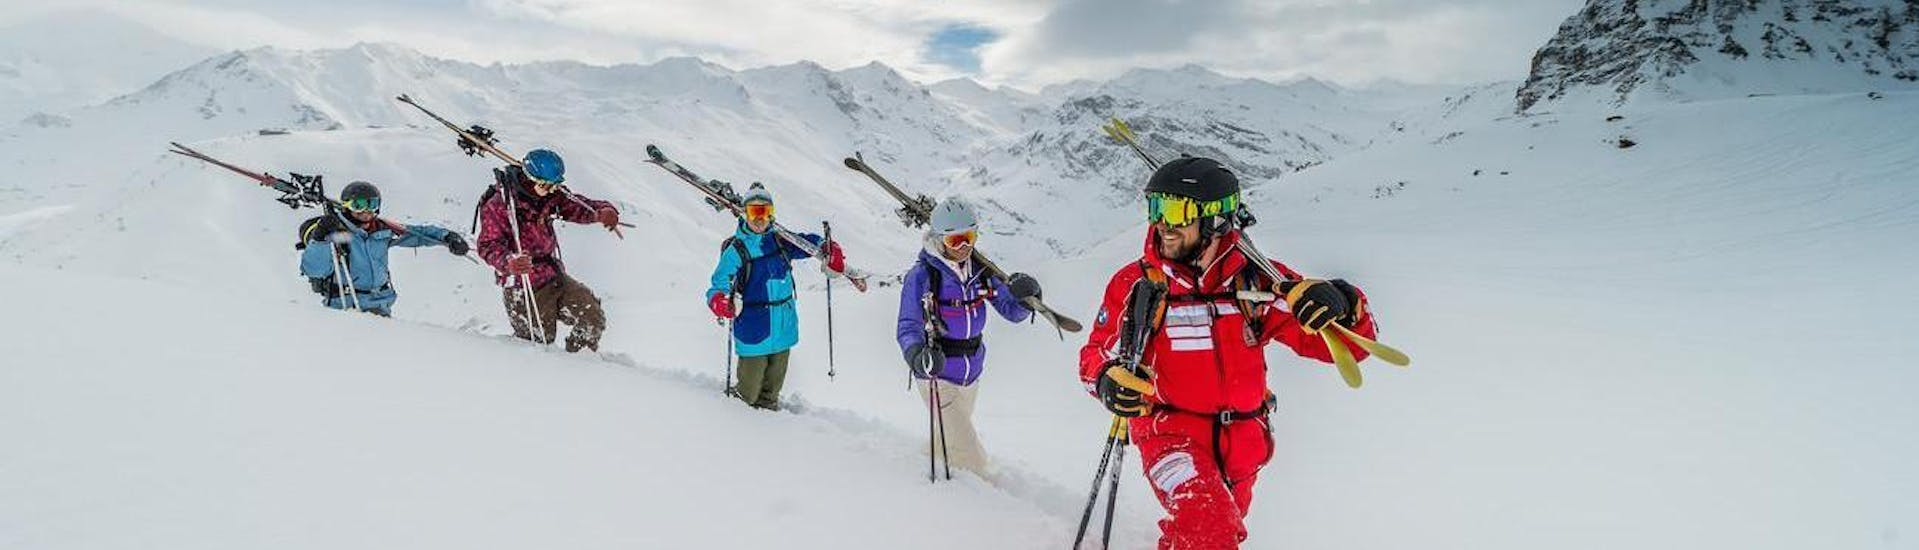 Ski enthusiasts are heading up during the Off Piste Skiing Lessons - All Ages to enjoy the freedom of off-piste skiing under the guidance of a certified instructor from ESF Val d'Isère.